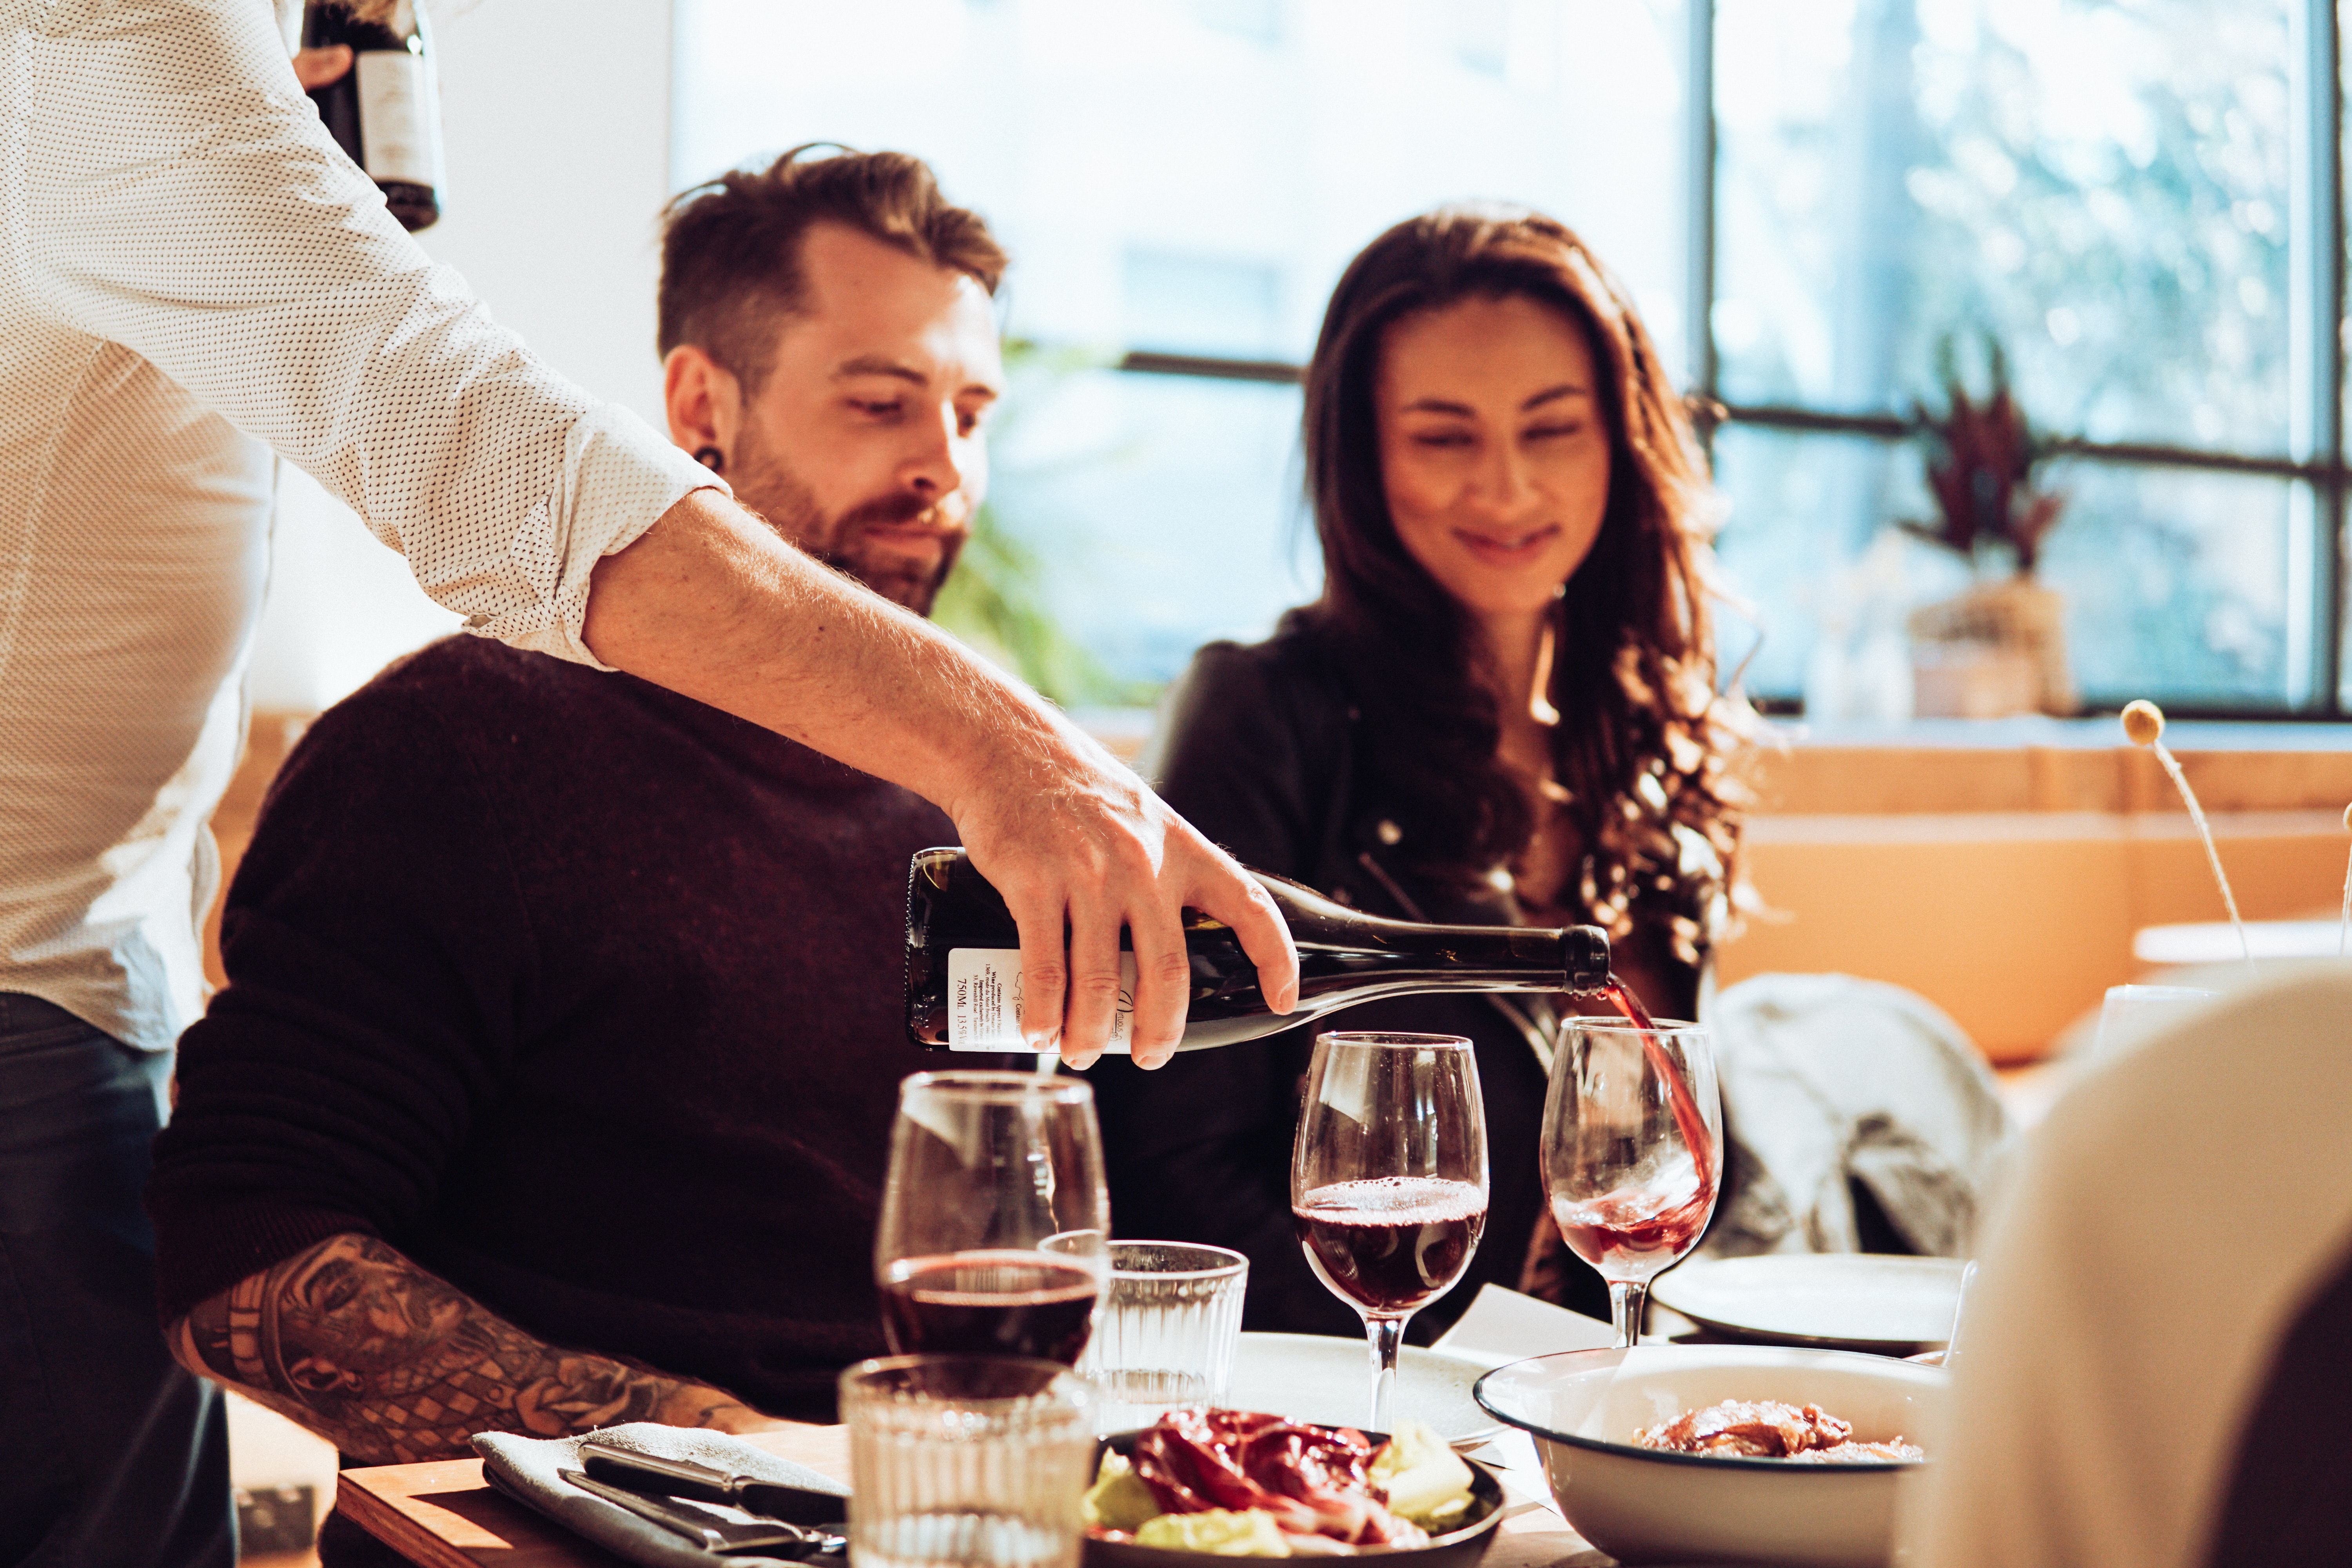 Couple dining with red wine | IFIS Publishing